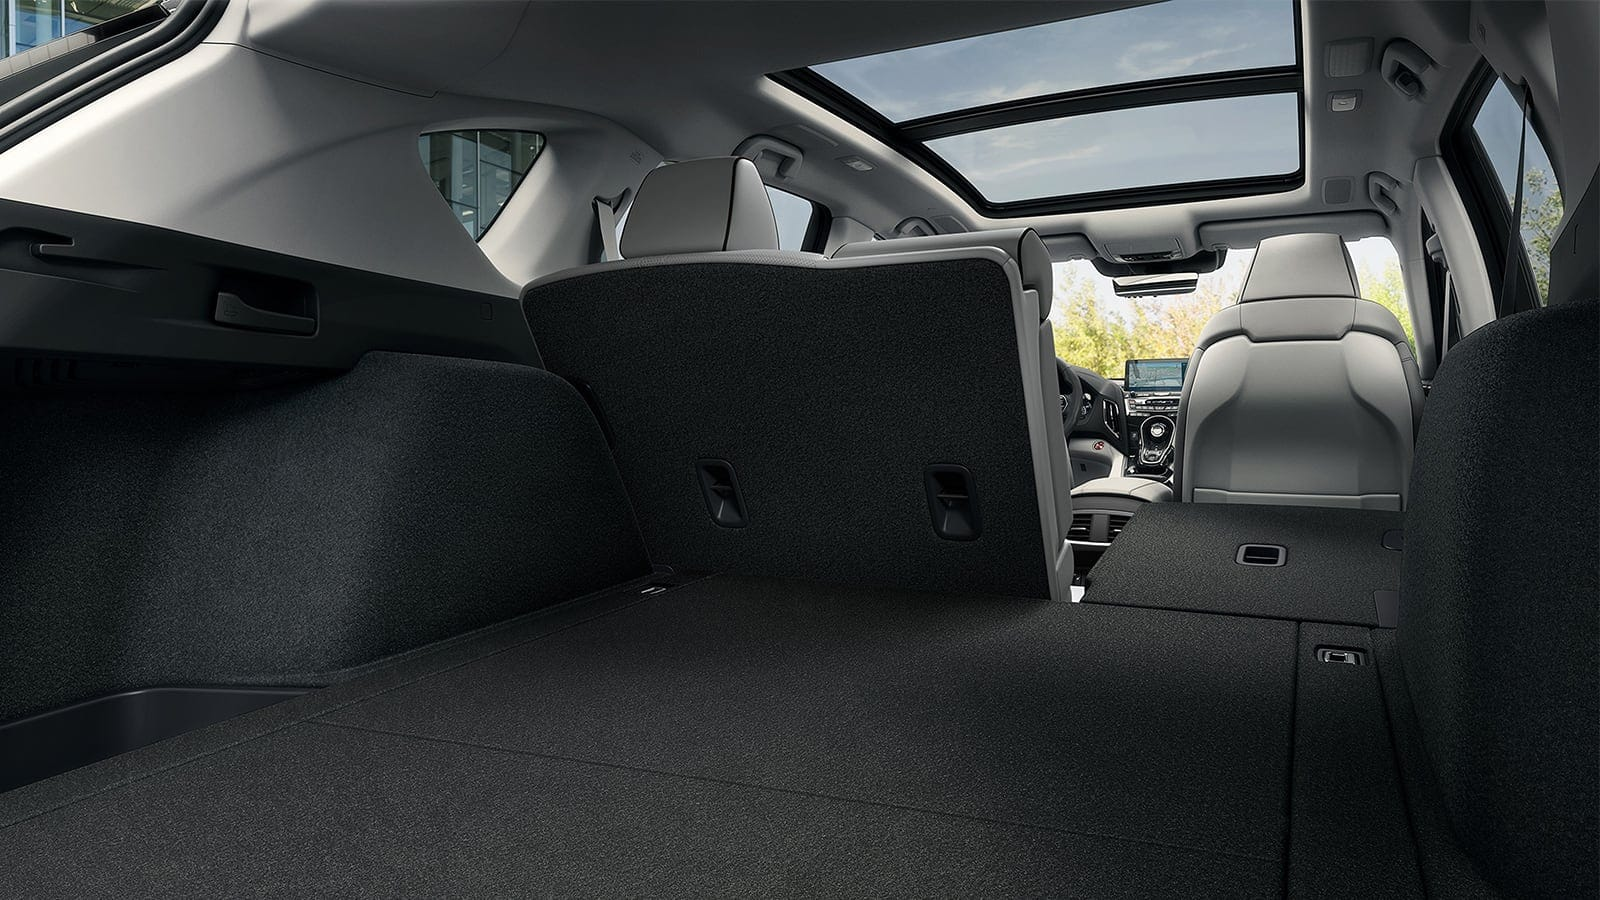 2020 Acura RDX Storage Space